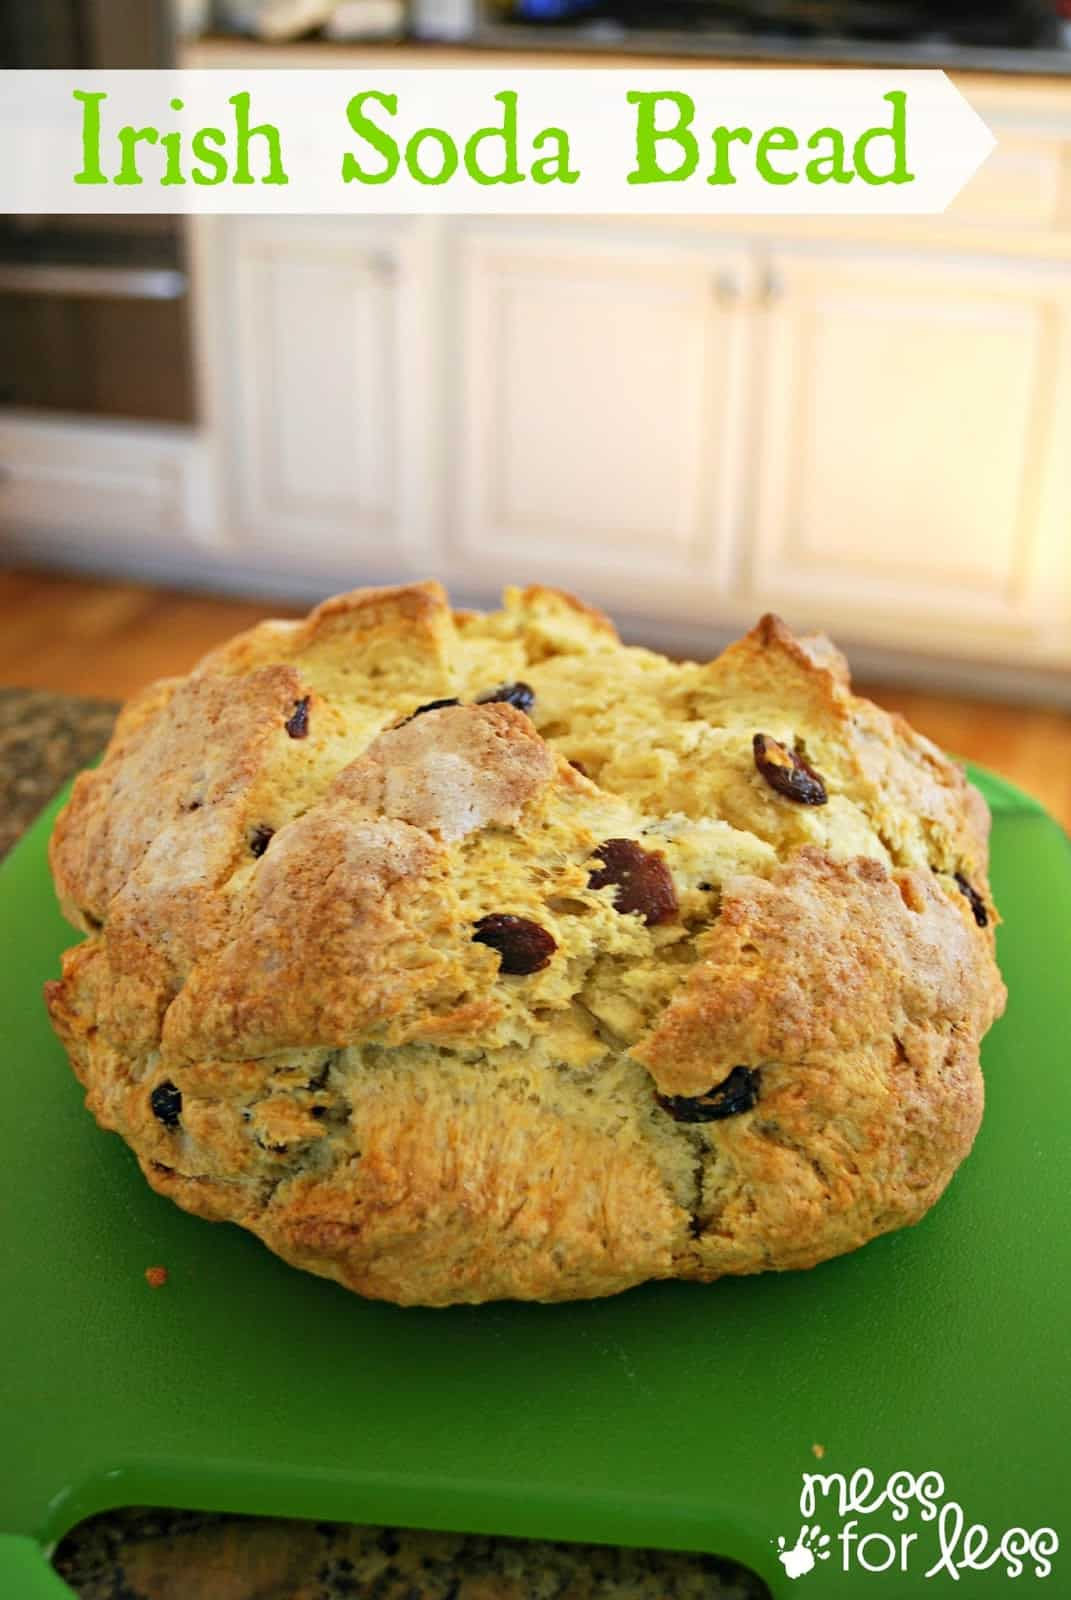 This Irish Soda Bread Recipe is perfect to make with kids as you get into the spirit of St. Patrick's Day.